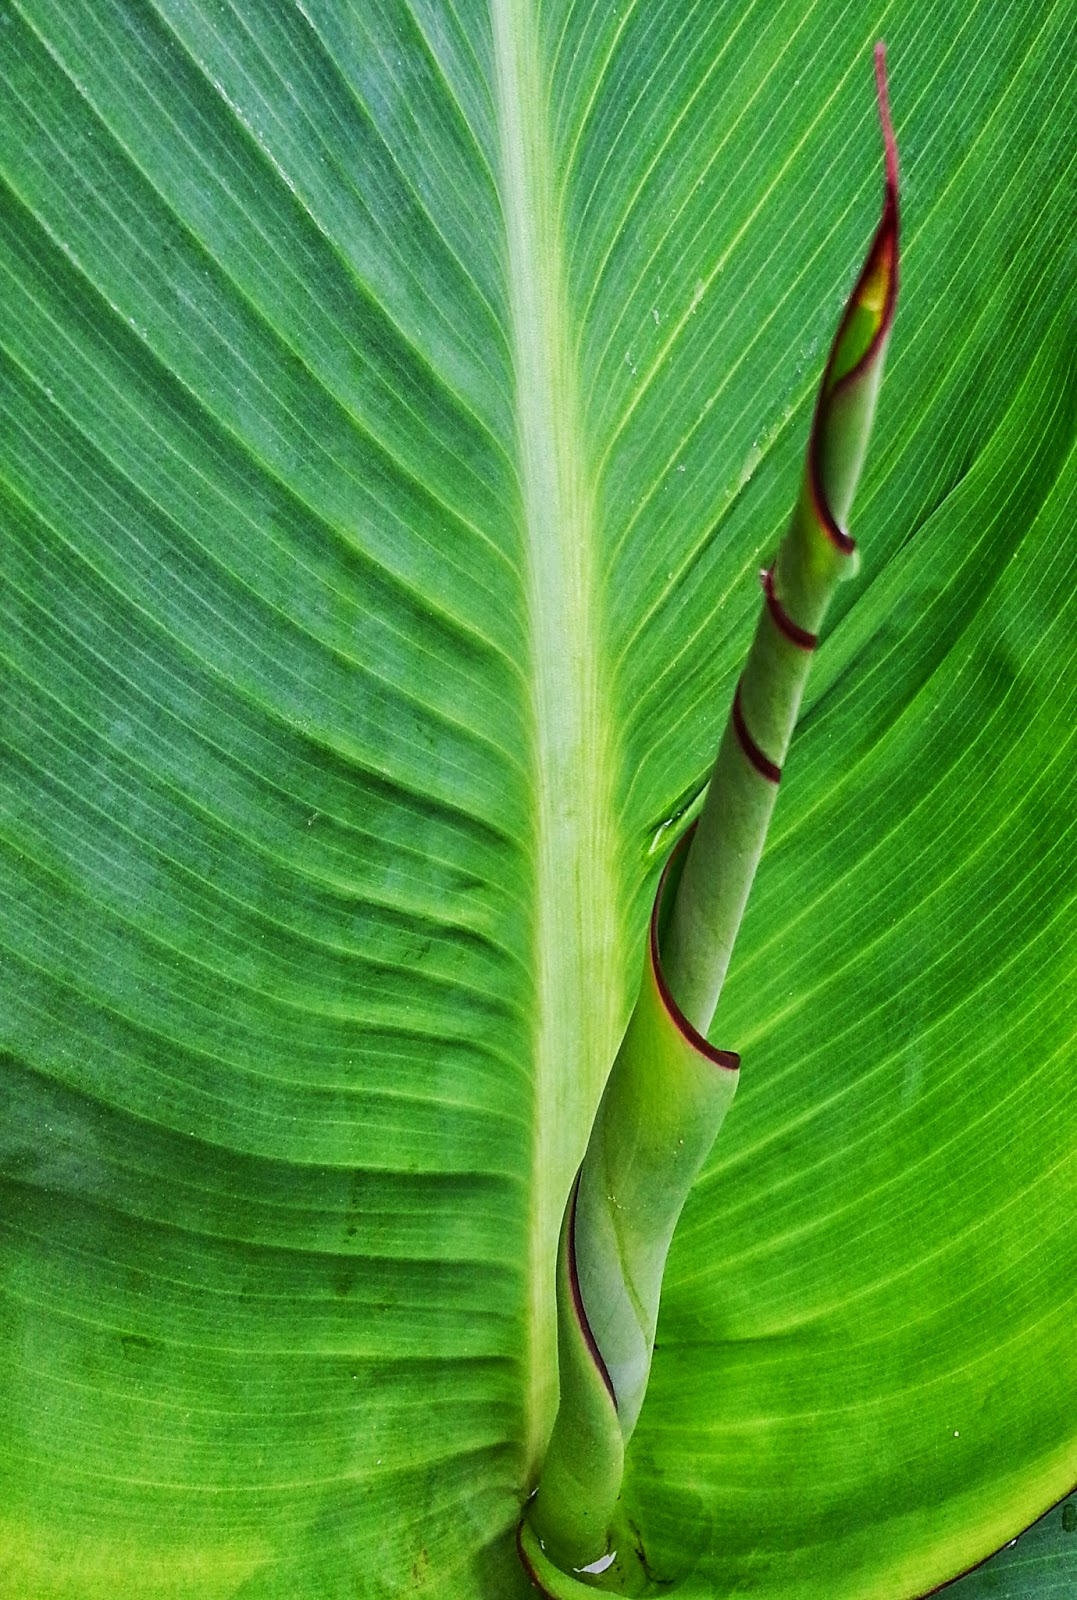 leaf unfurling